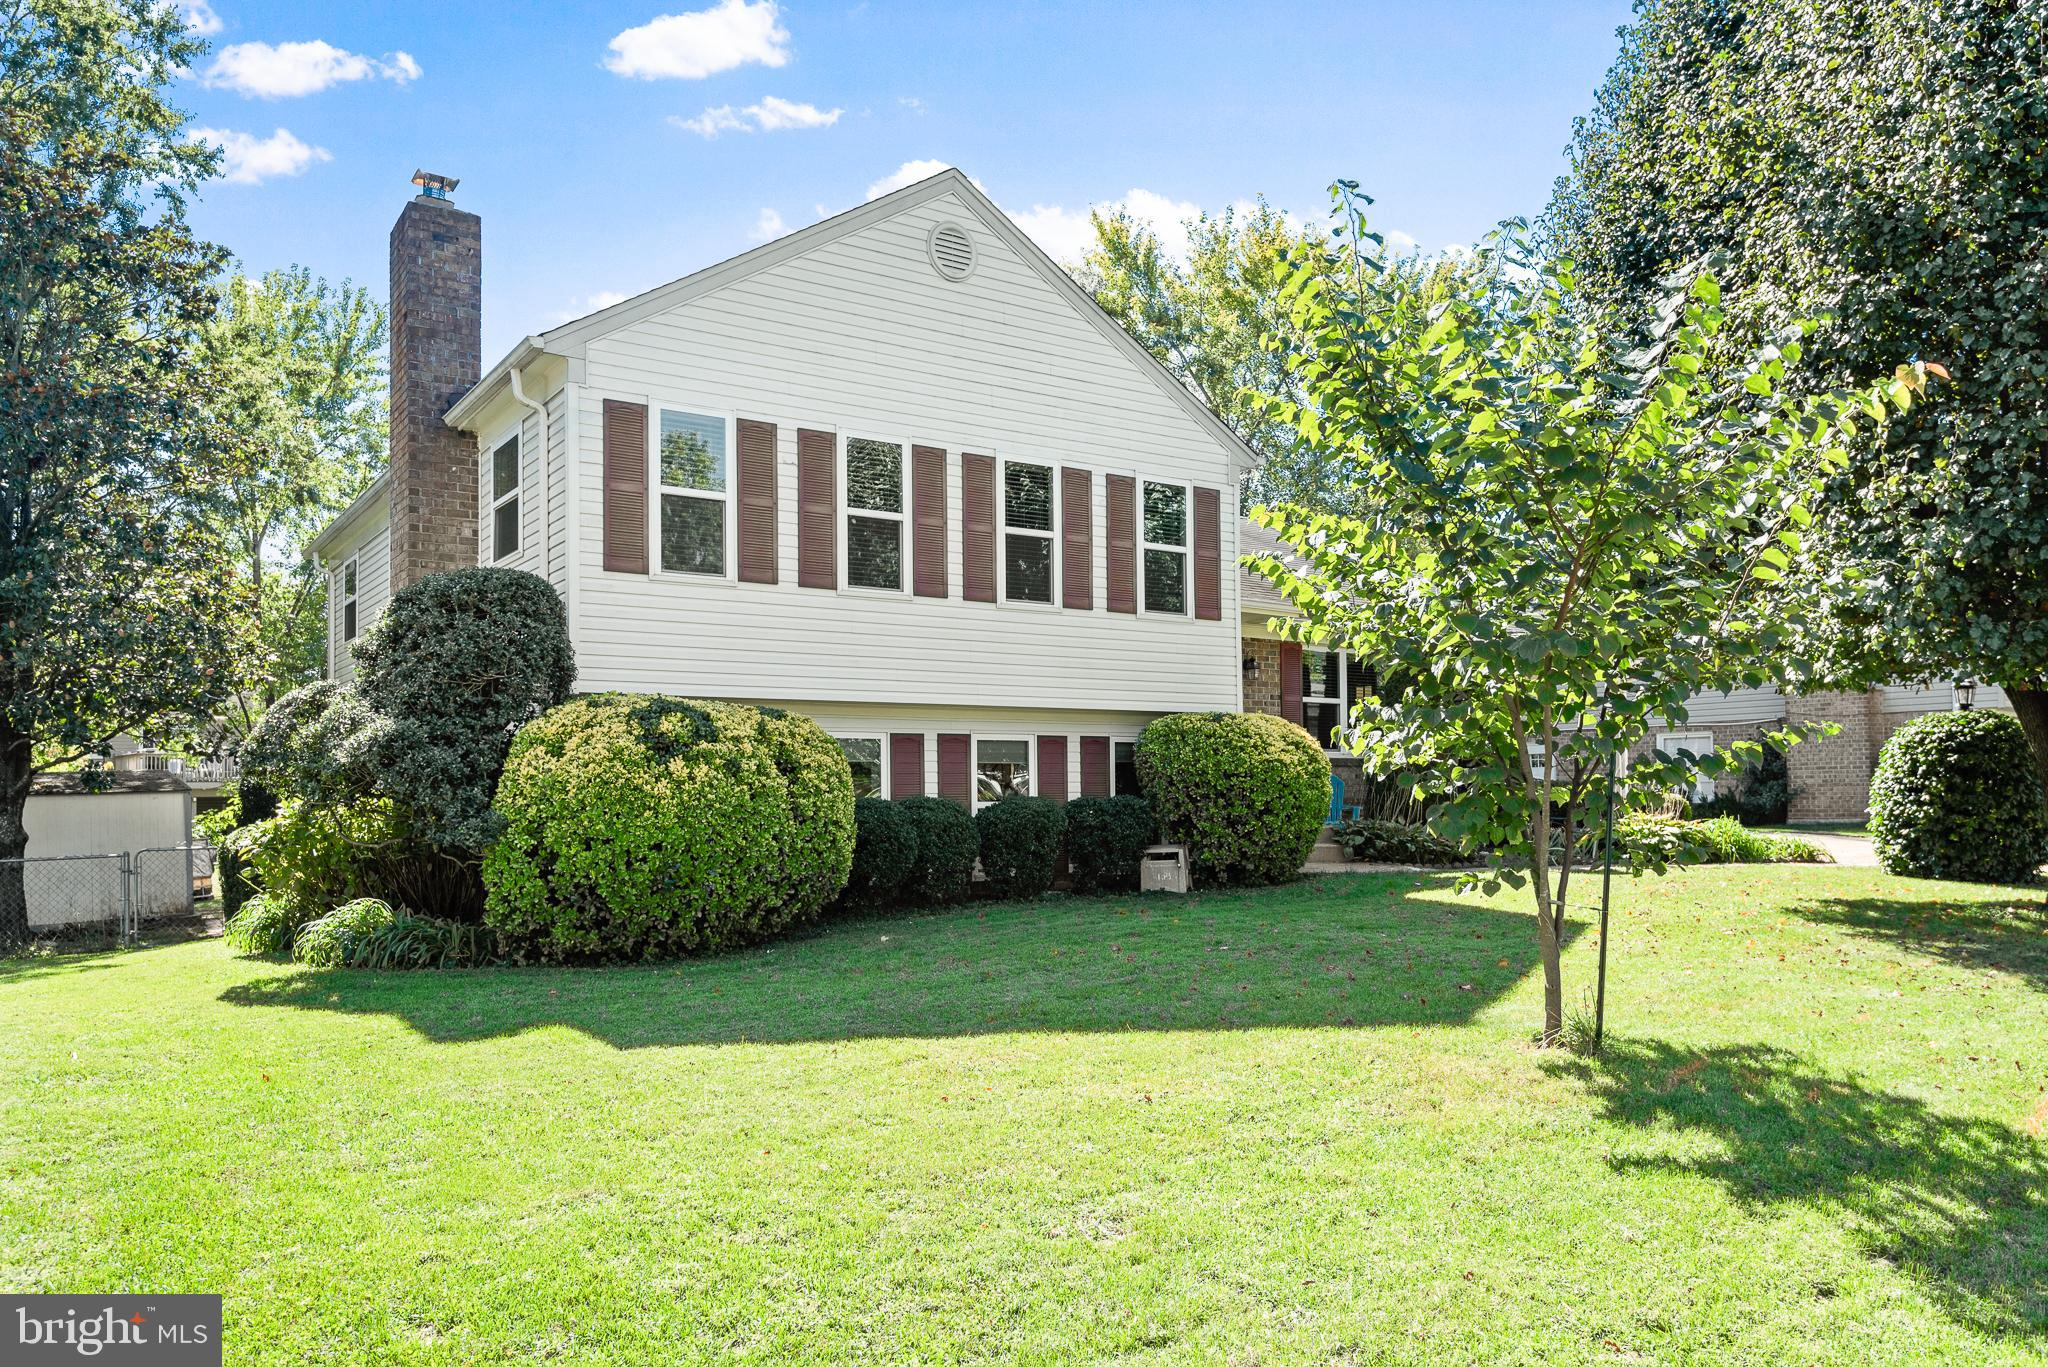 Welcome to 9707 Sudley Manor Drive, a gorgeous Sudley Winterset home located within minutes of Sudle